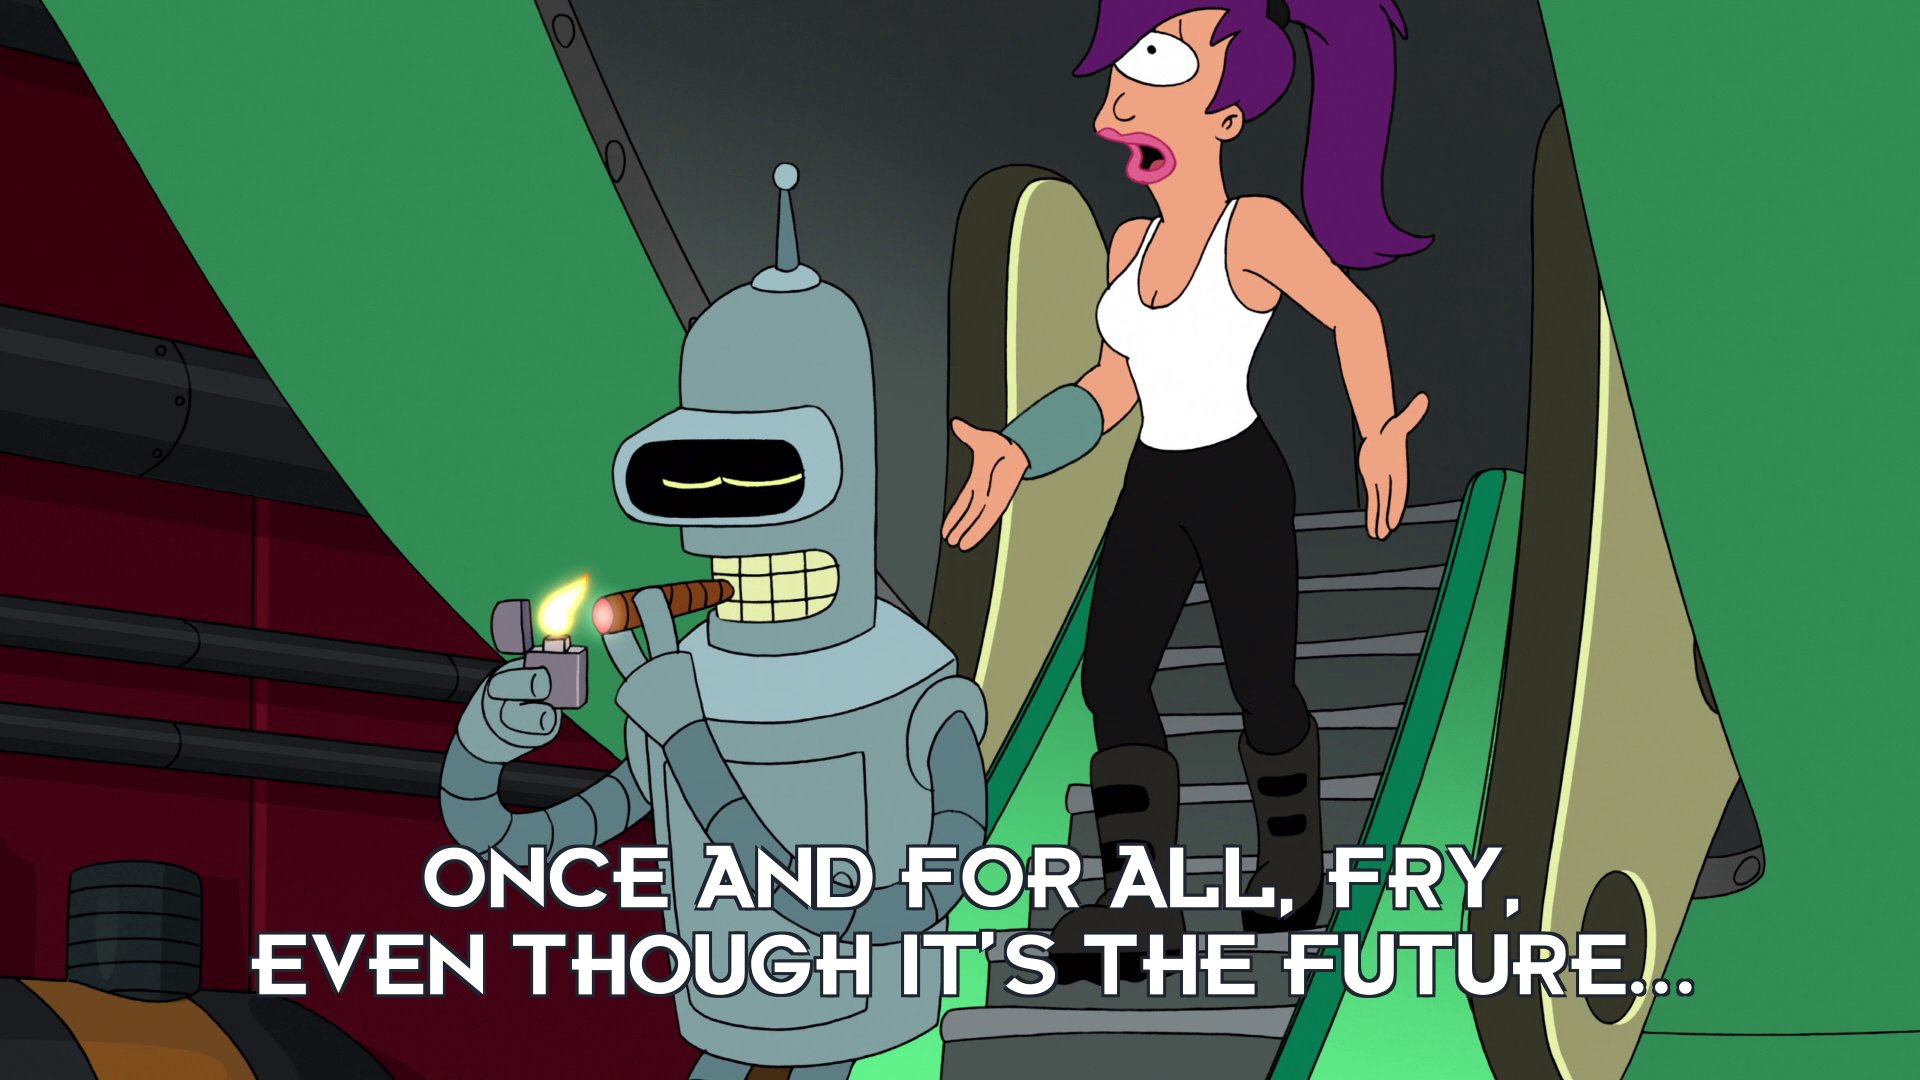 Turanga Leela: Once and for all, Fry, even though it's the future...